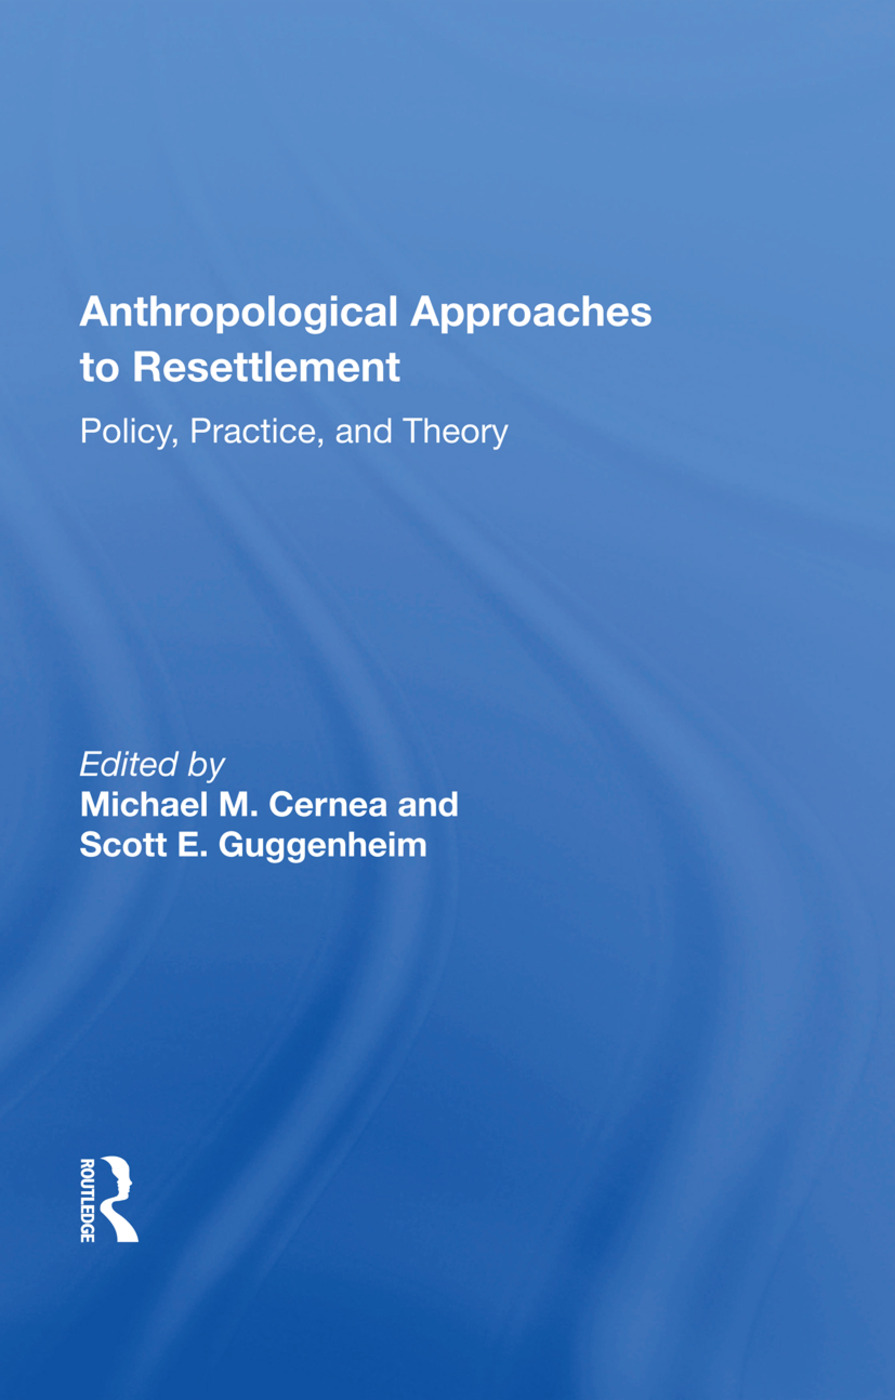 Anthropological Approaches to Resettlement: